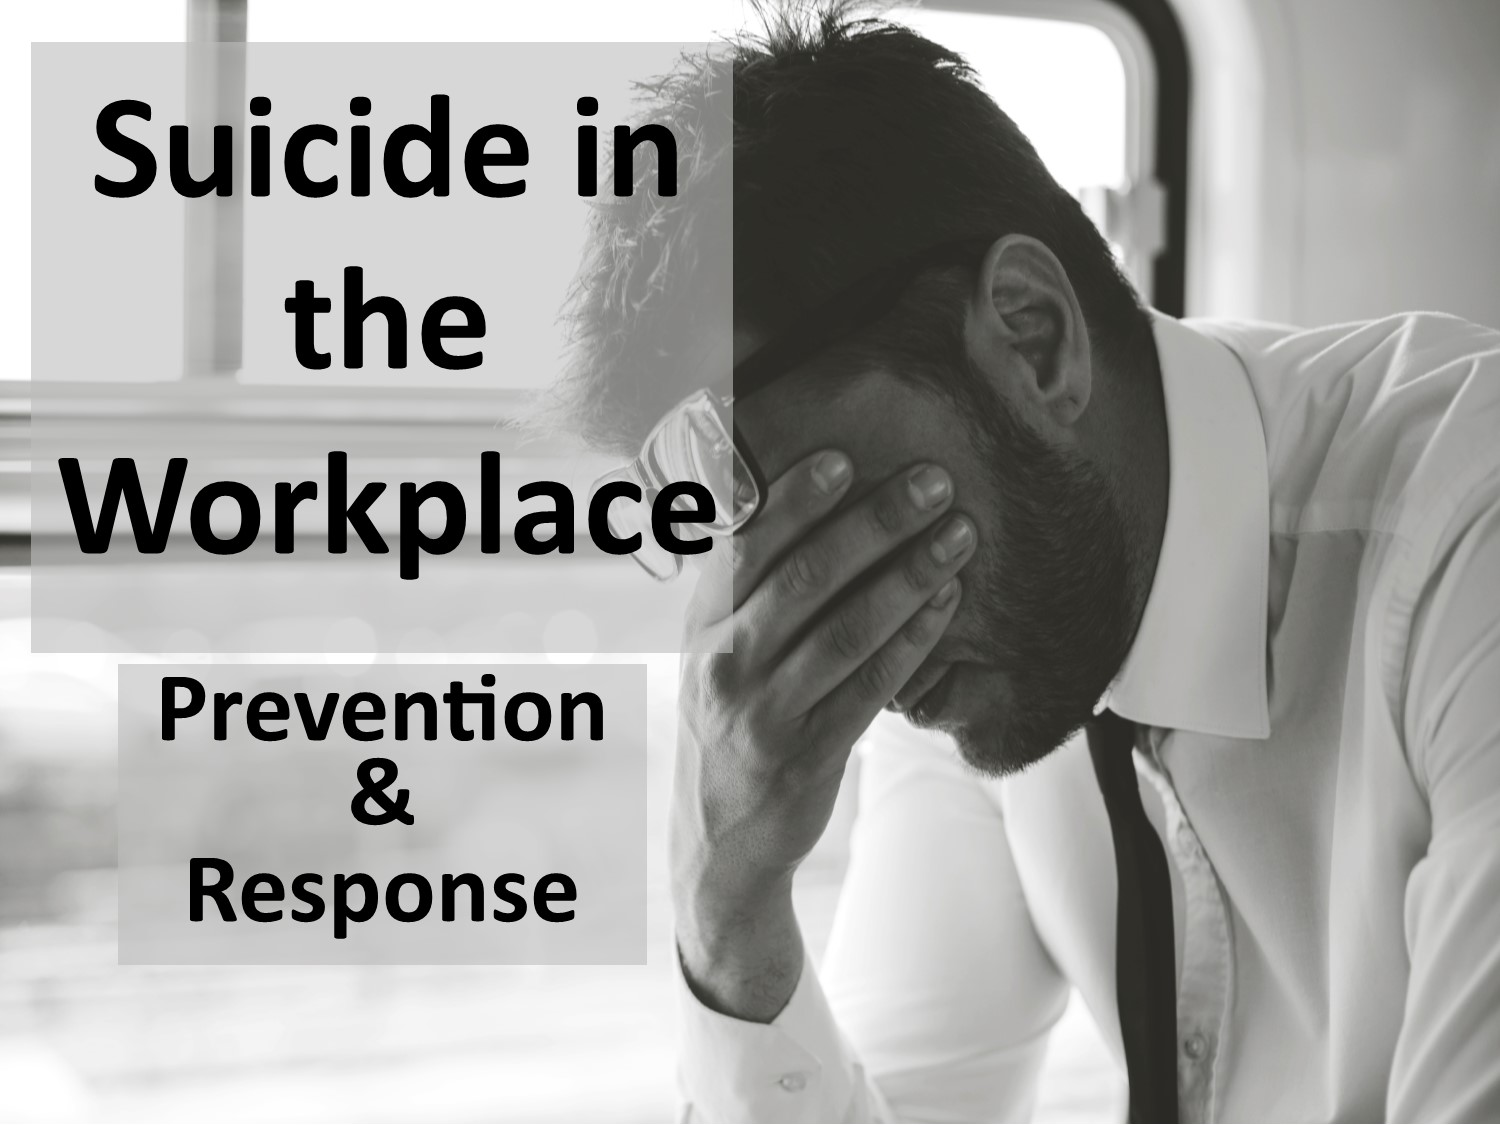 Suicide in the Workplace: Prevention & Response